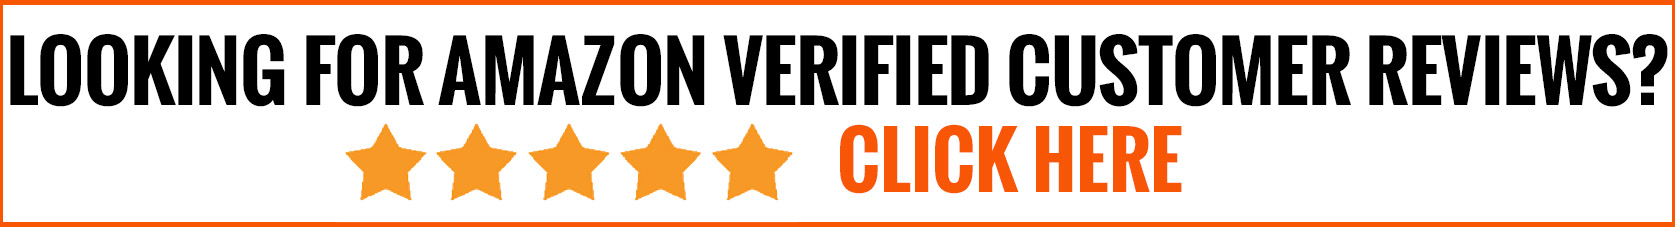 Looking for Amazon Verified Customer Reviews? Click Here!